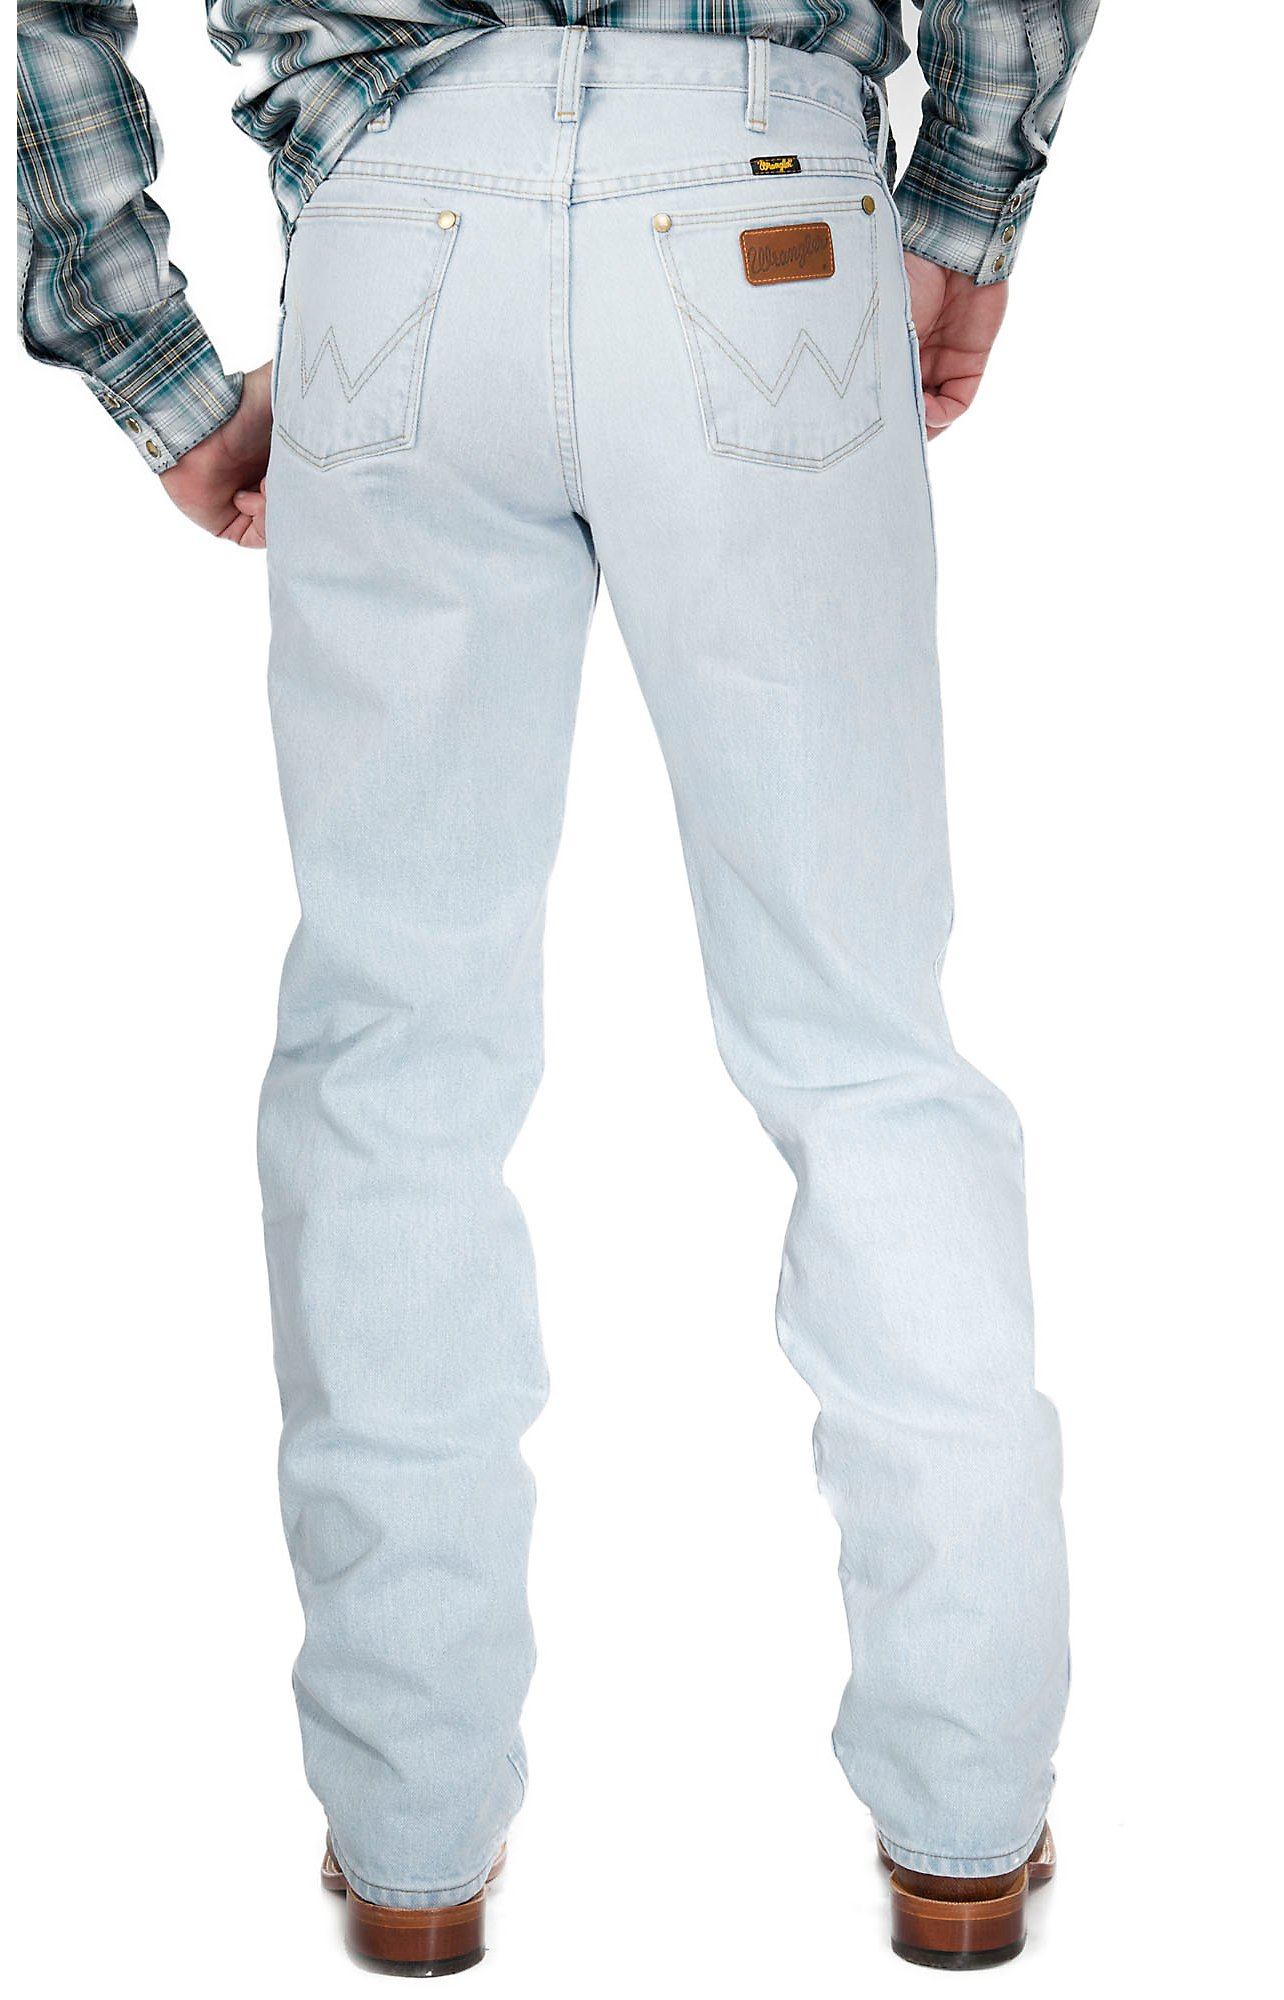 white wash jeans - Jean Yu Beauty